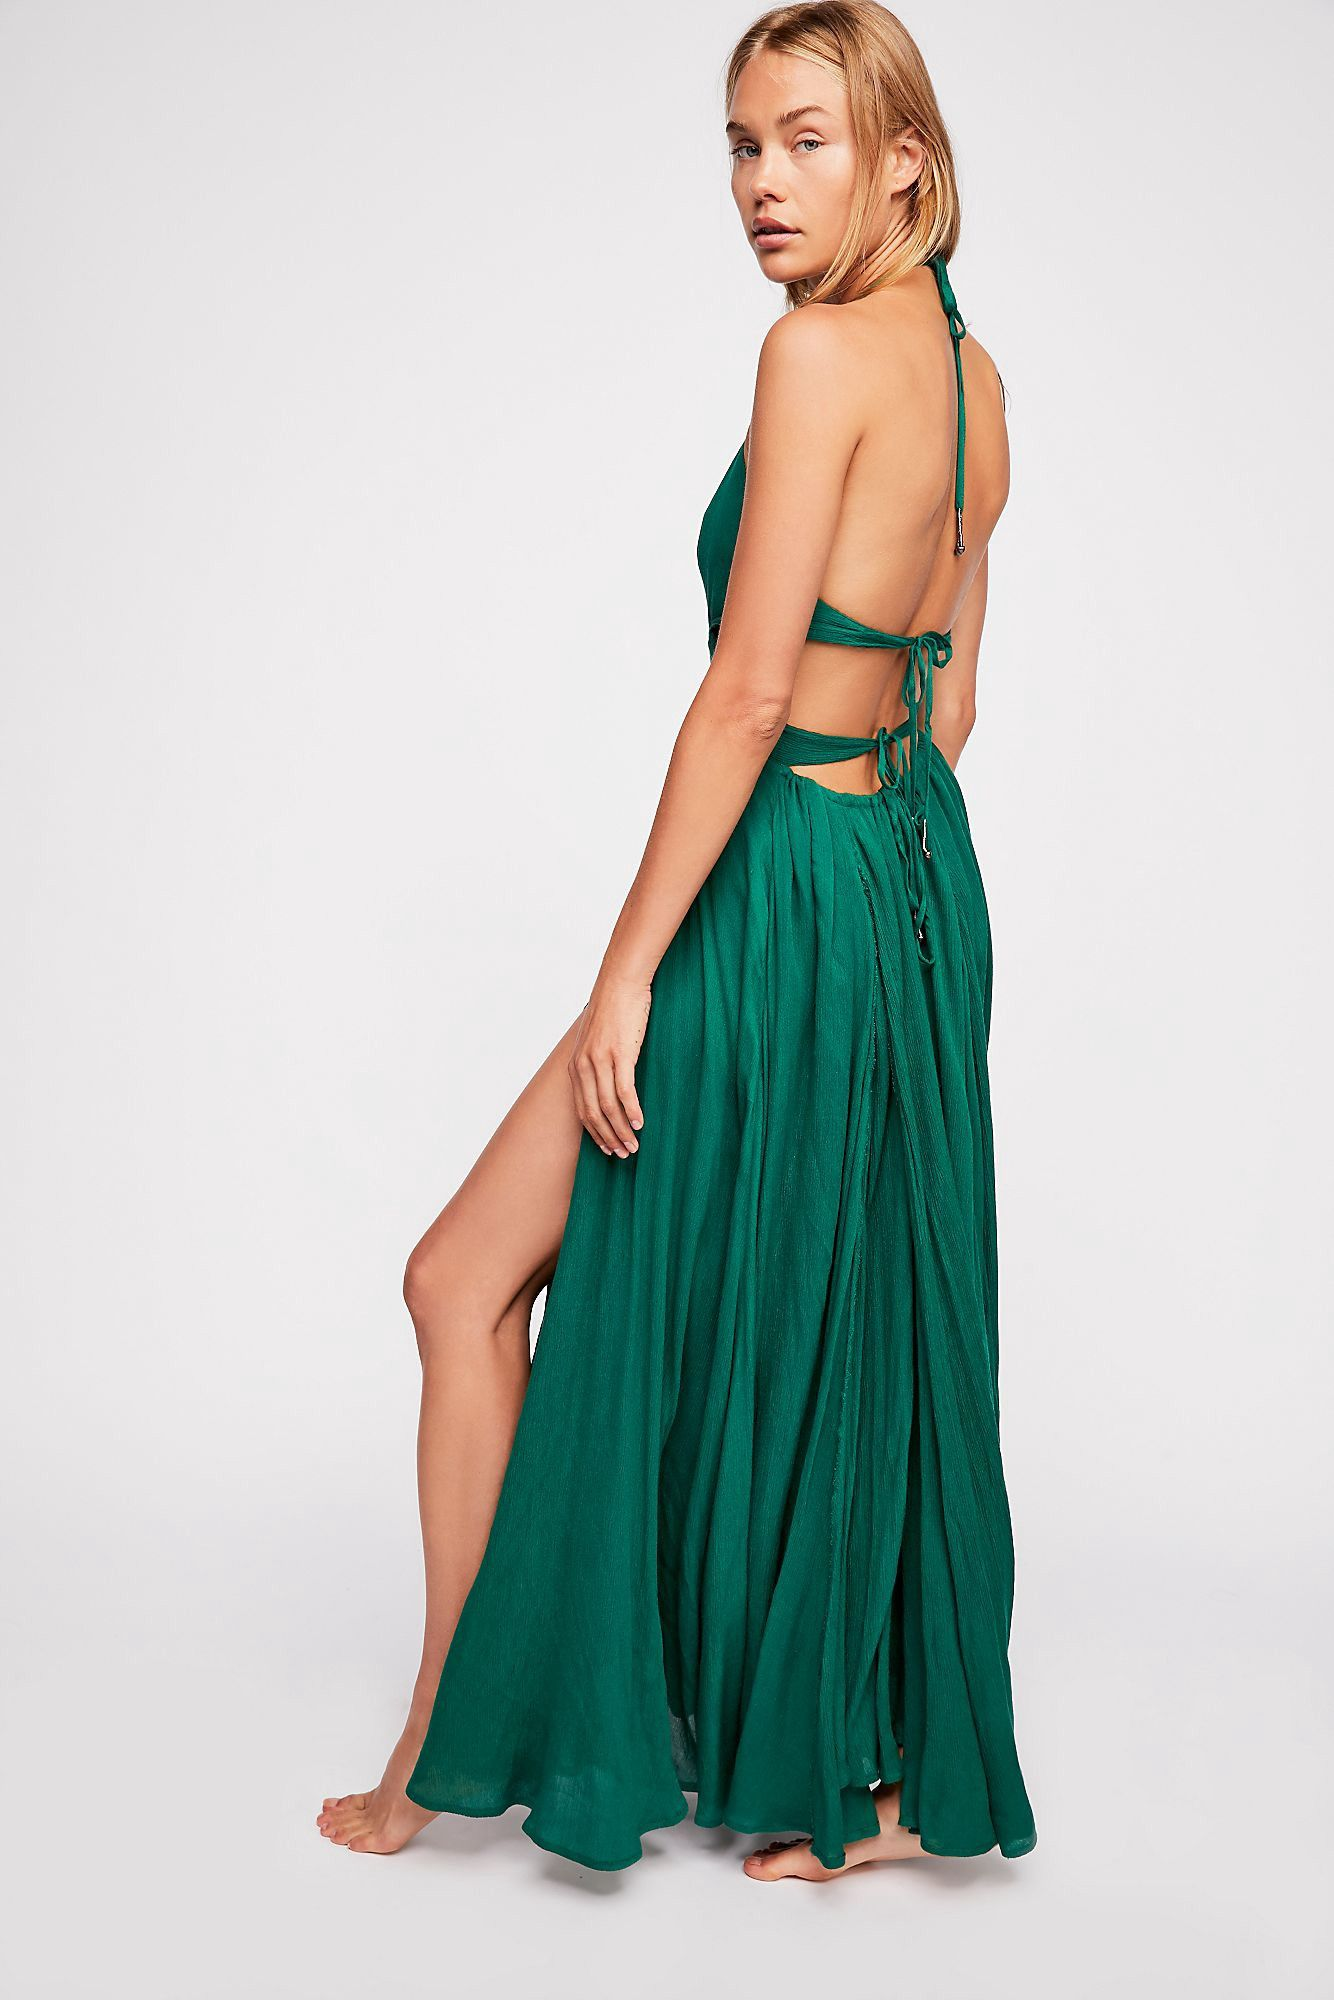 fe732621758e Free People Lille Maxi Dress - Summer Bronze S | Products | Dresses ...